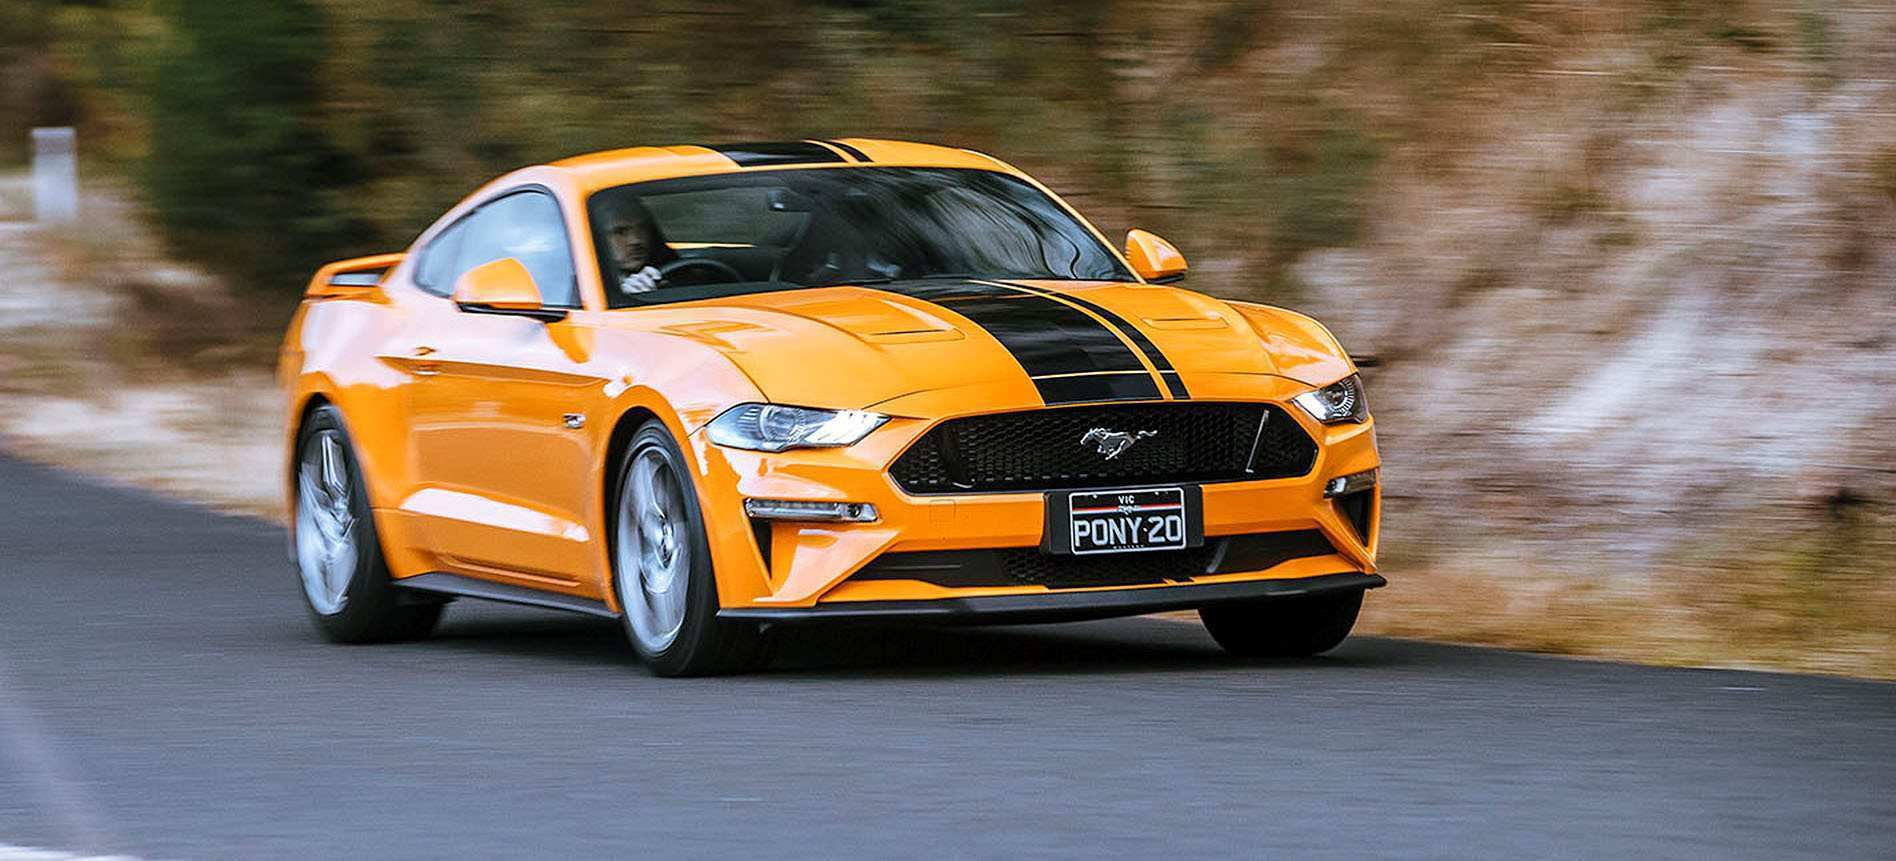 40 Best 2019 Ford Mustang Gt500 History